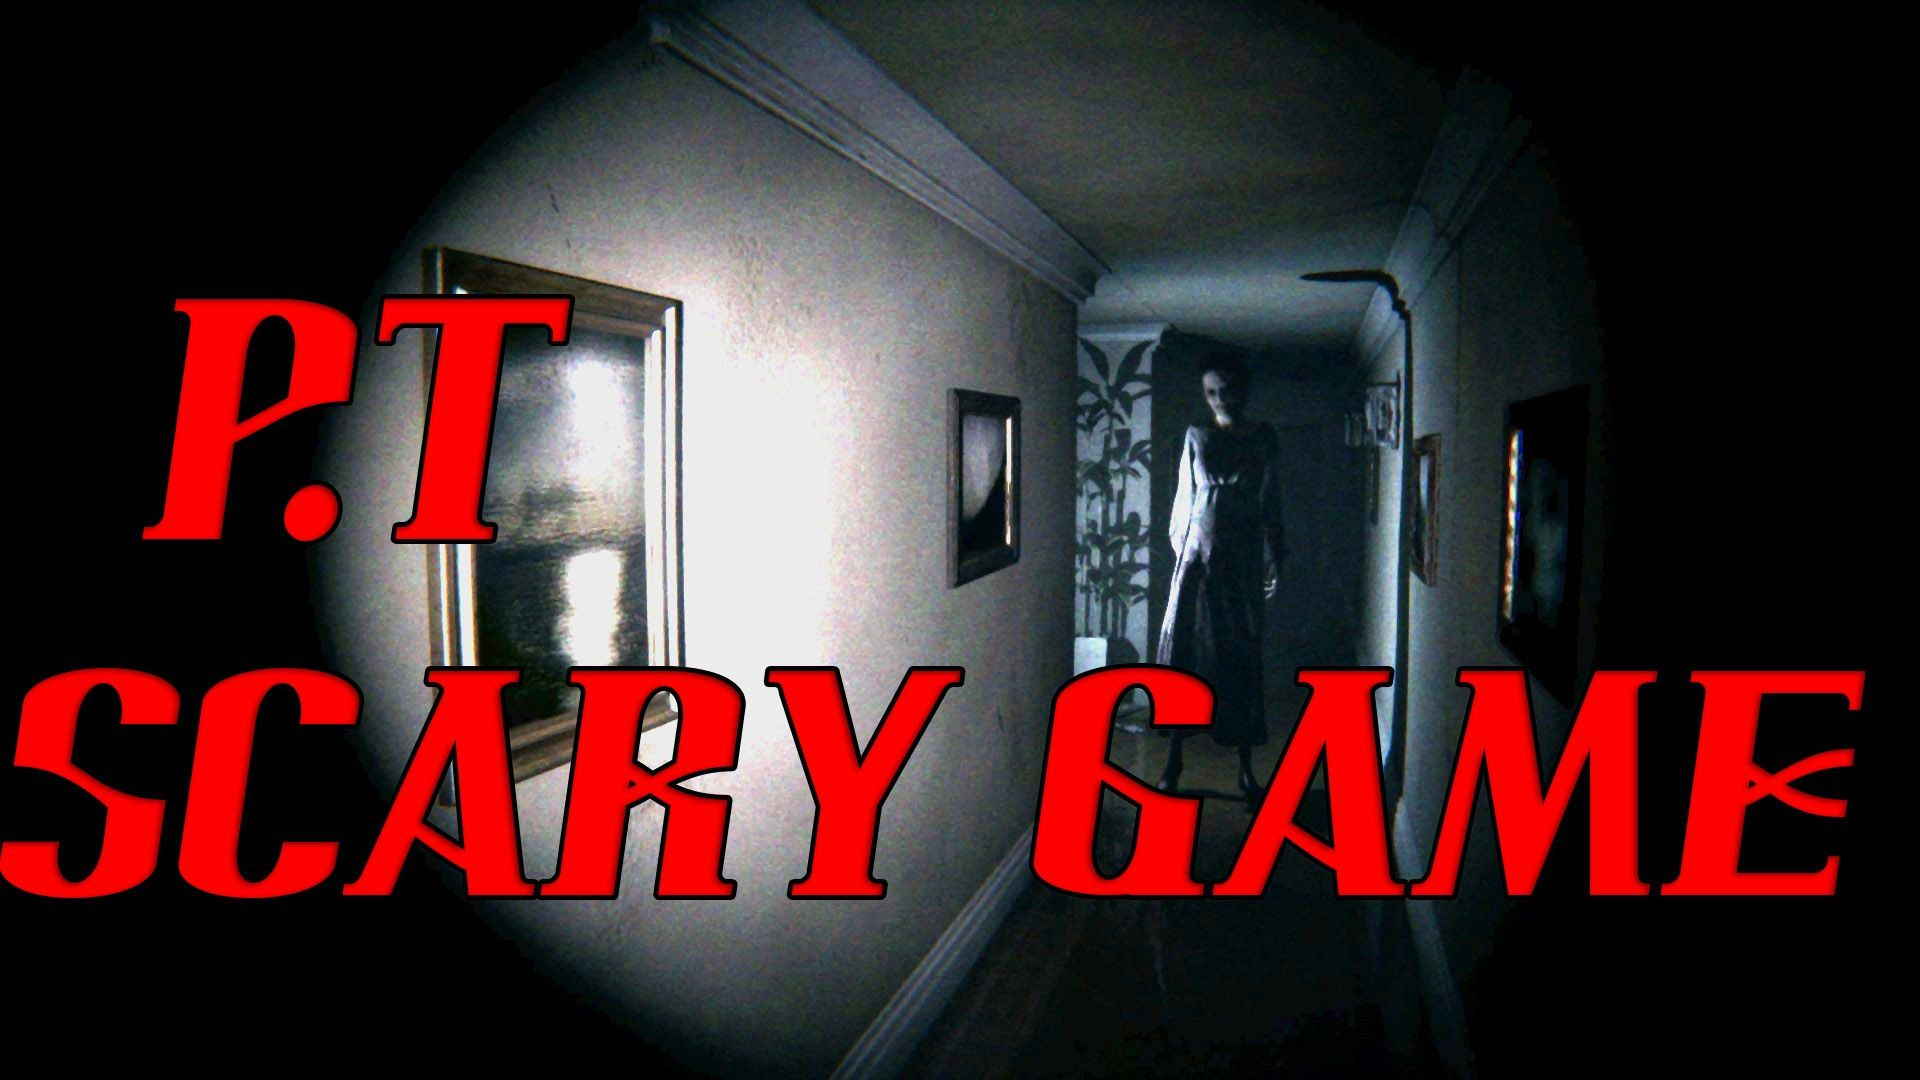 SCARY GAME P.T. (Silent Hills PS4 Horror Game) PS4 SCARY